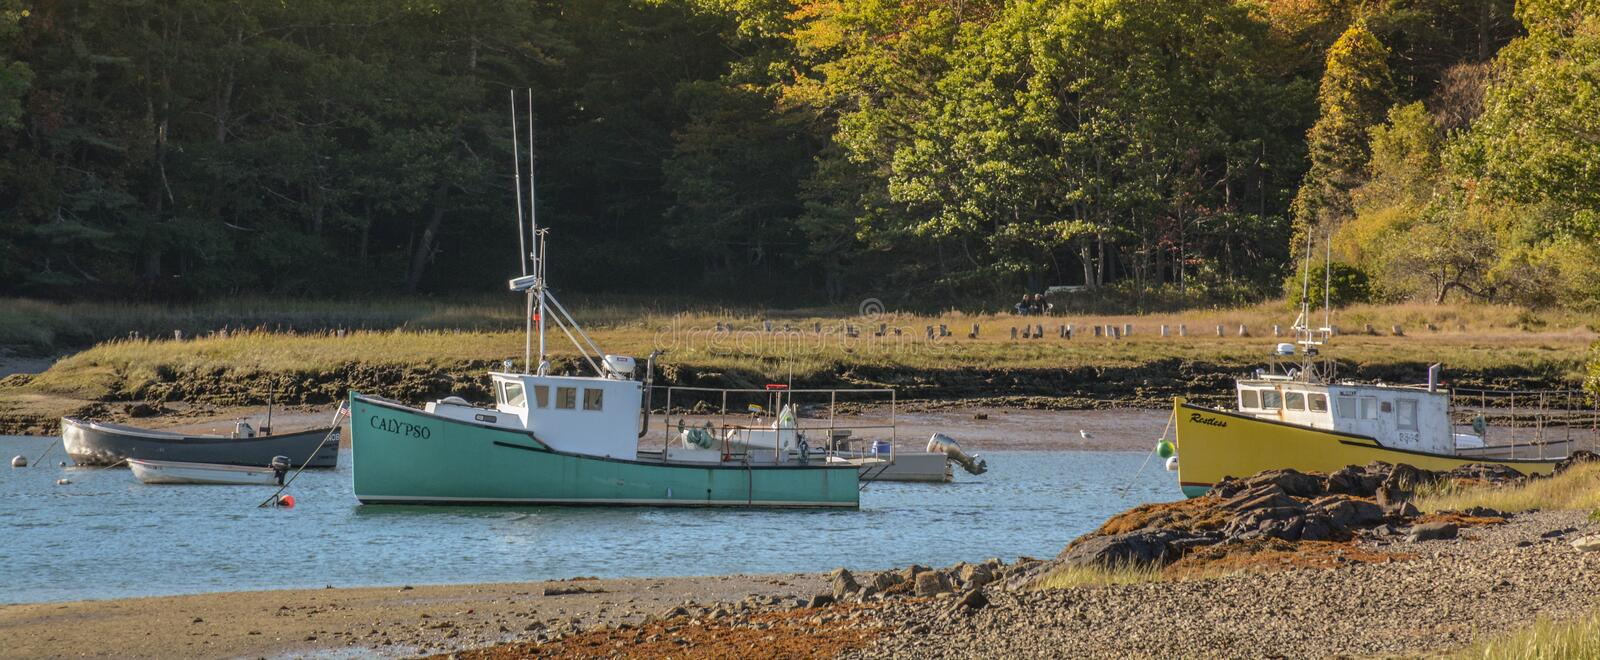 Maine Fishing Boats at Low Tide royalty free stock photos